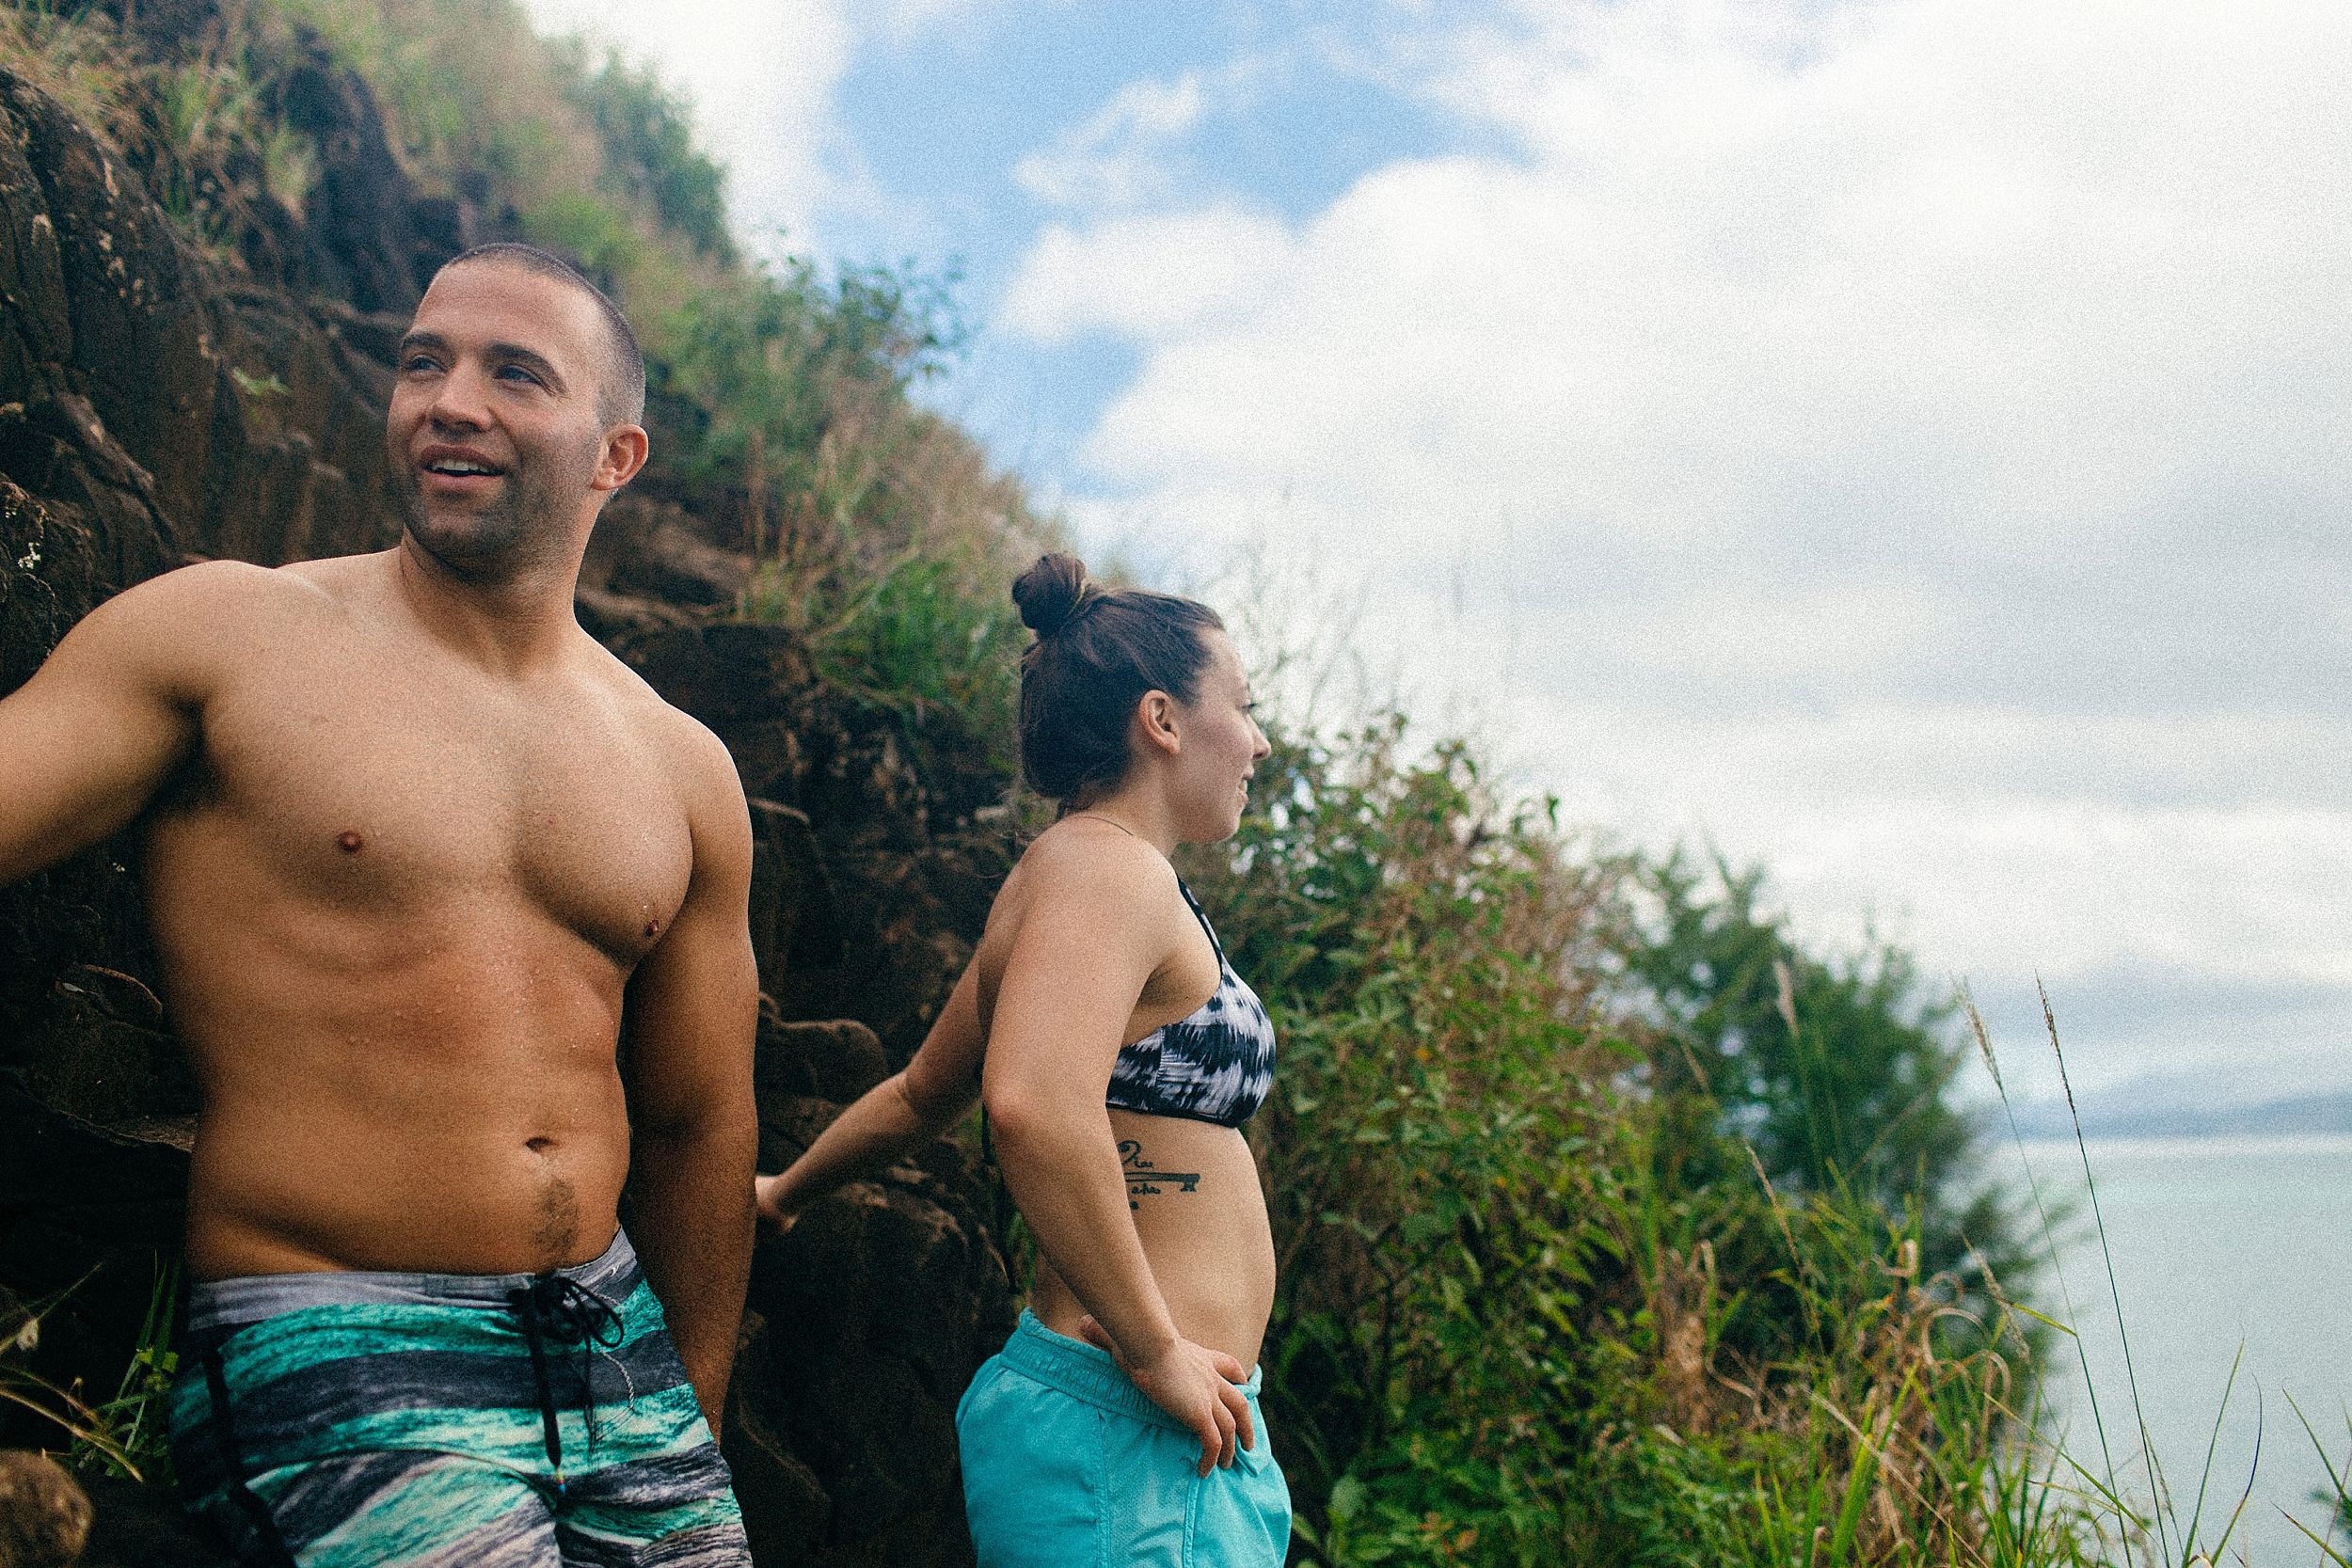 Our Hawaii Life - Personal Journal, October 2018